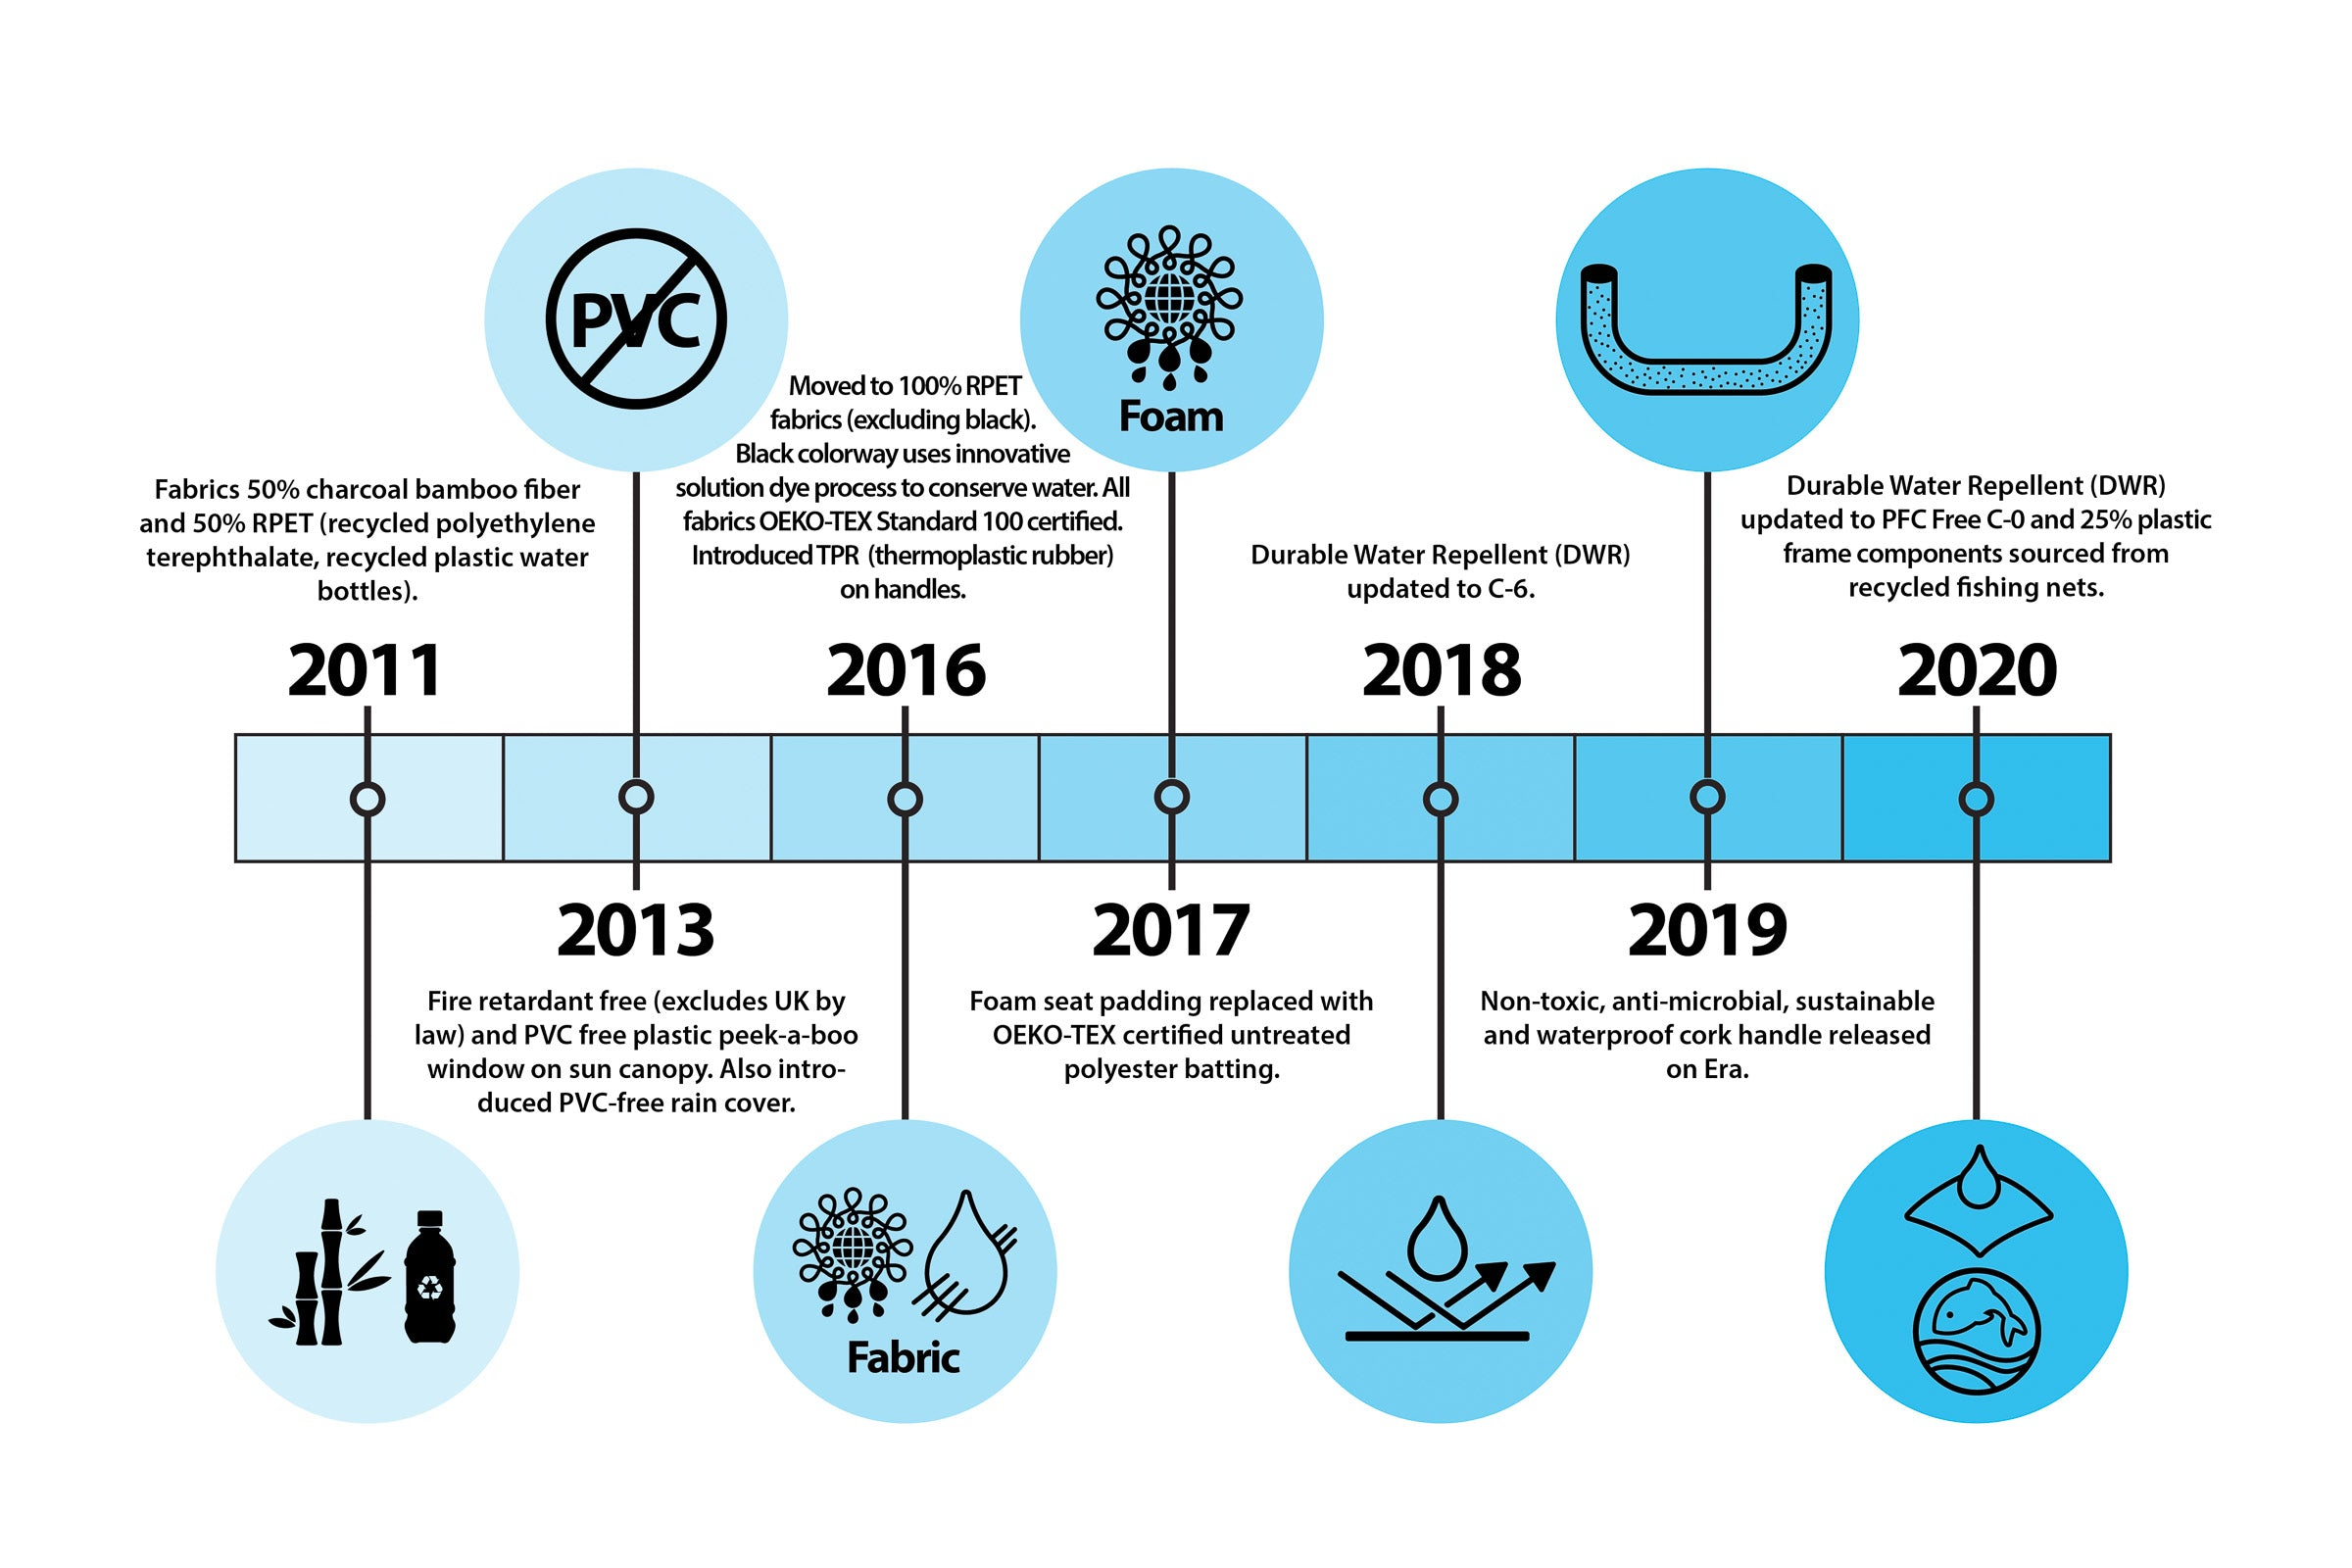 Bumbleride Material History and Timeline Graphic